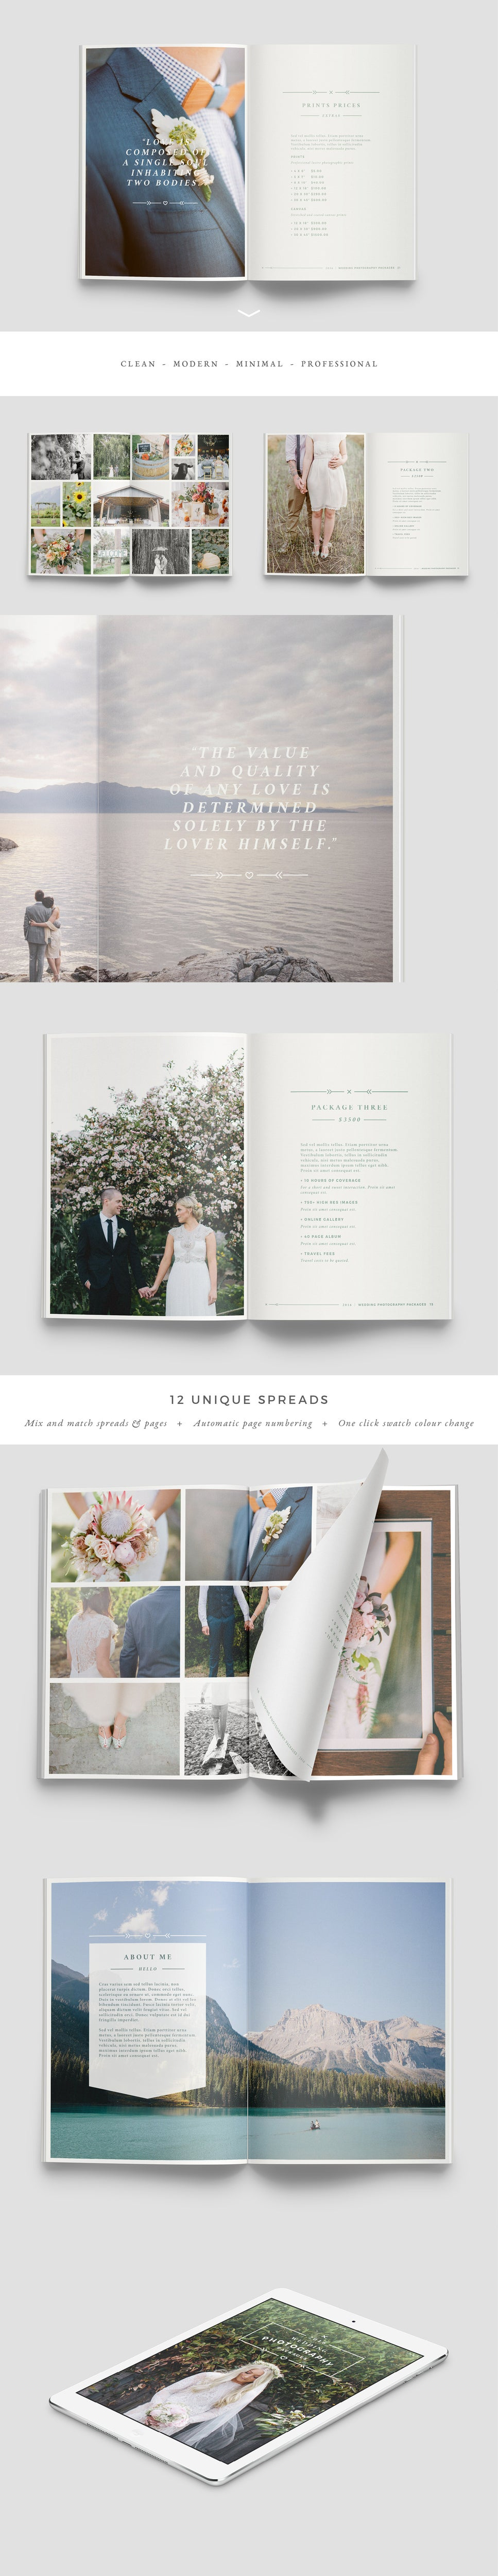 Image of WANDERERS Photography Brochure